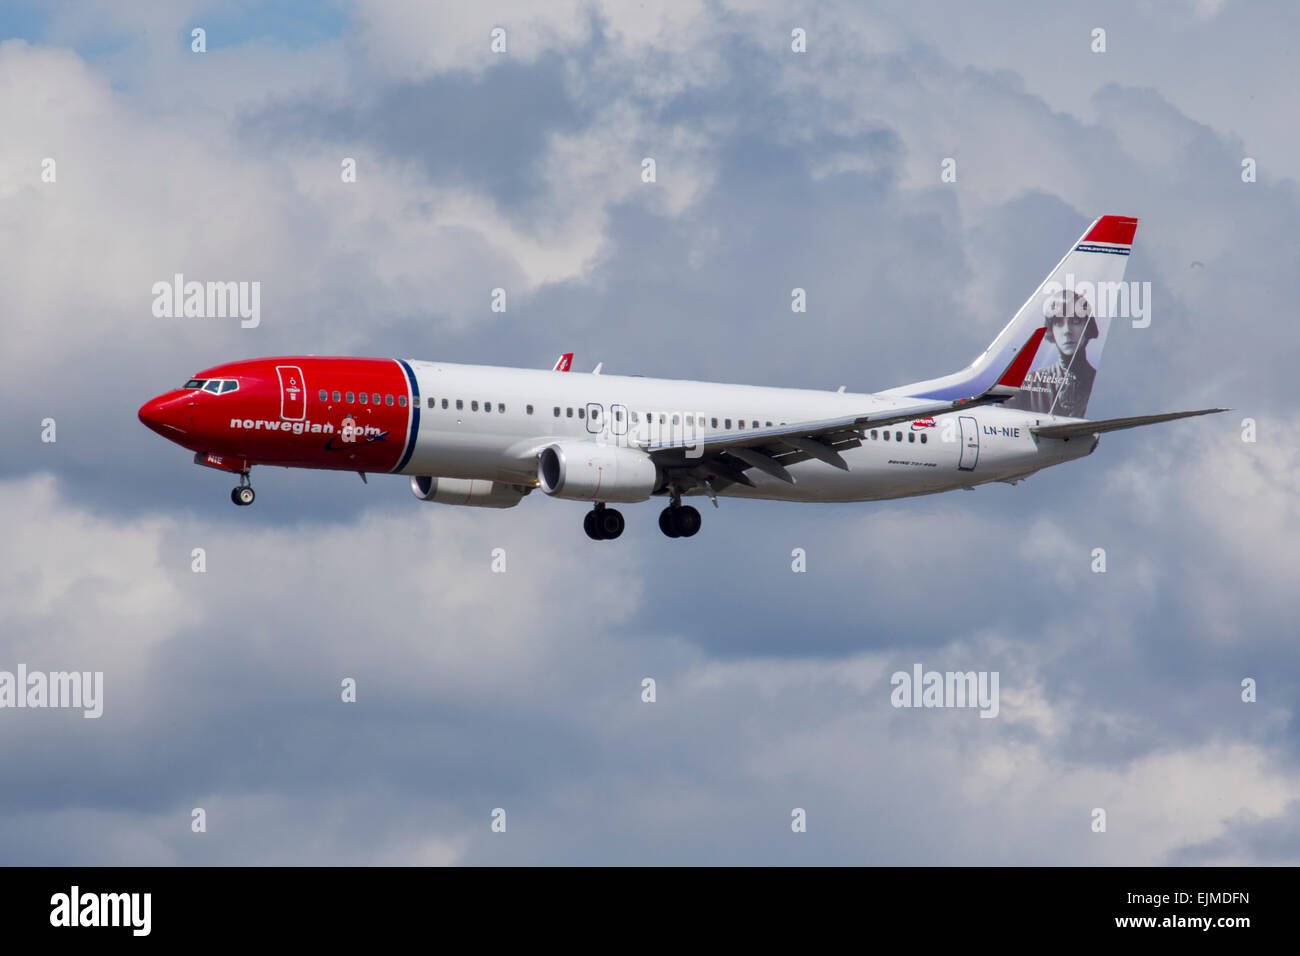 Norwegian Air Shuttle Boeing 737 Stockbild